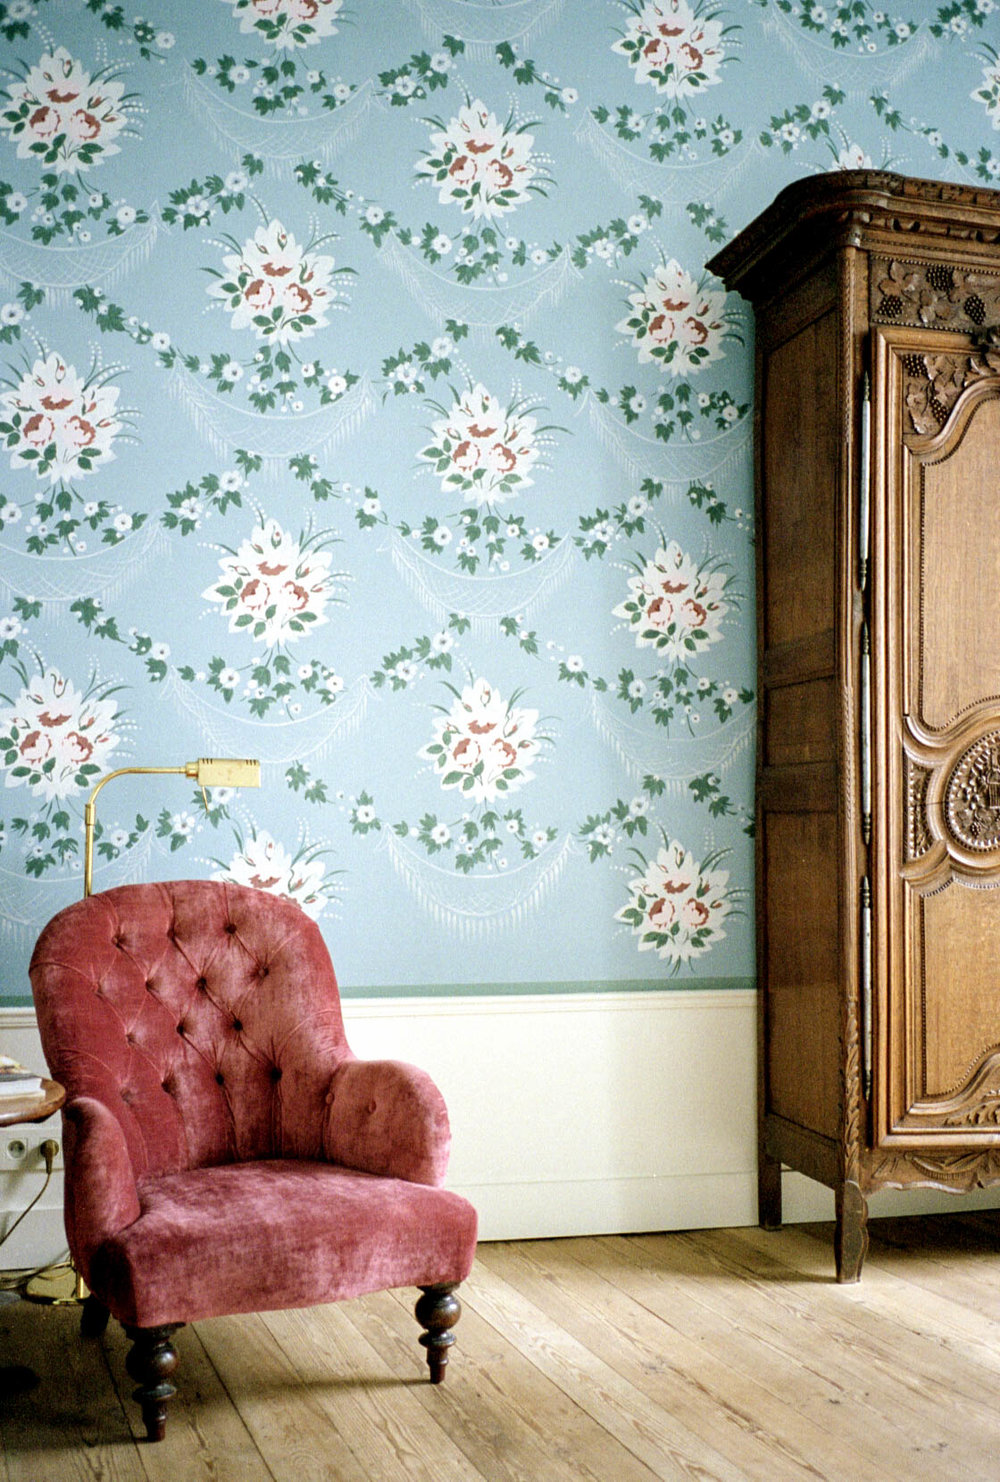 m7-011.bruges.palace_red_chair_wallpaper.jpg